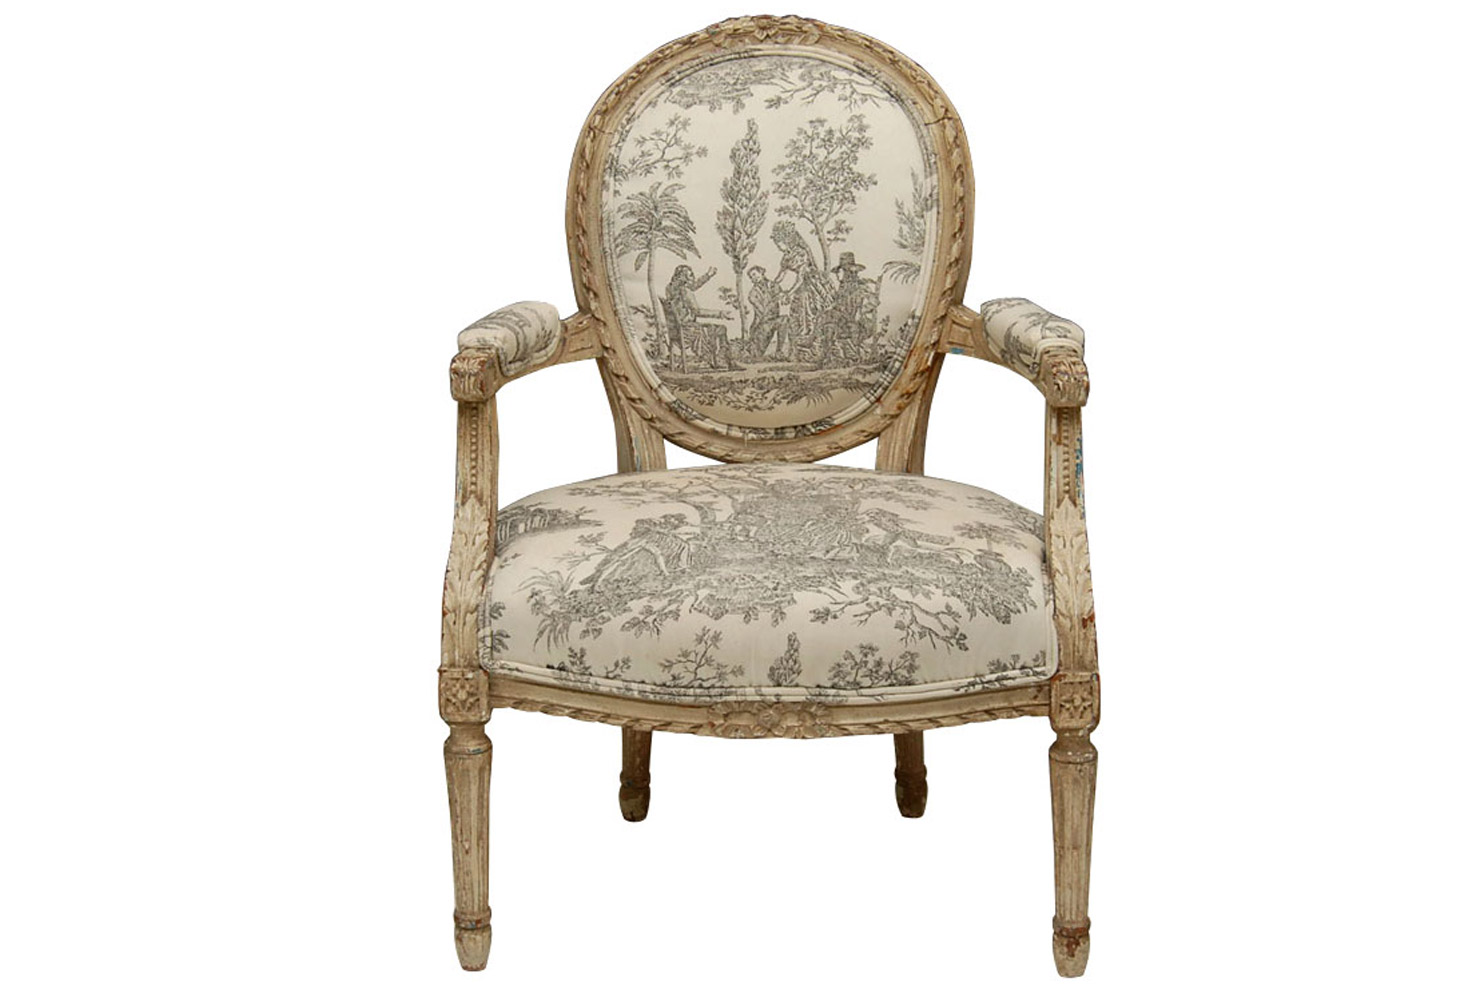 New Product of Philippe Starck's New Product of Philippe Starck's Check Out the New Product of Philippe Starck's louis xvi style painted fauteuil chair